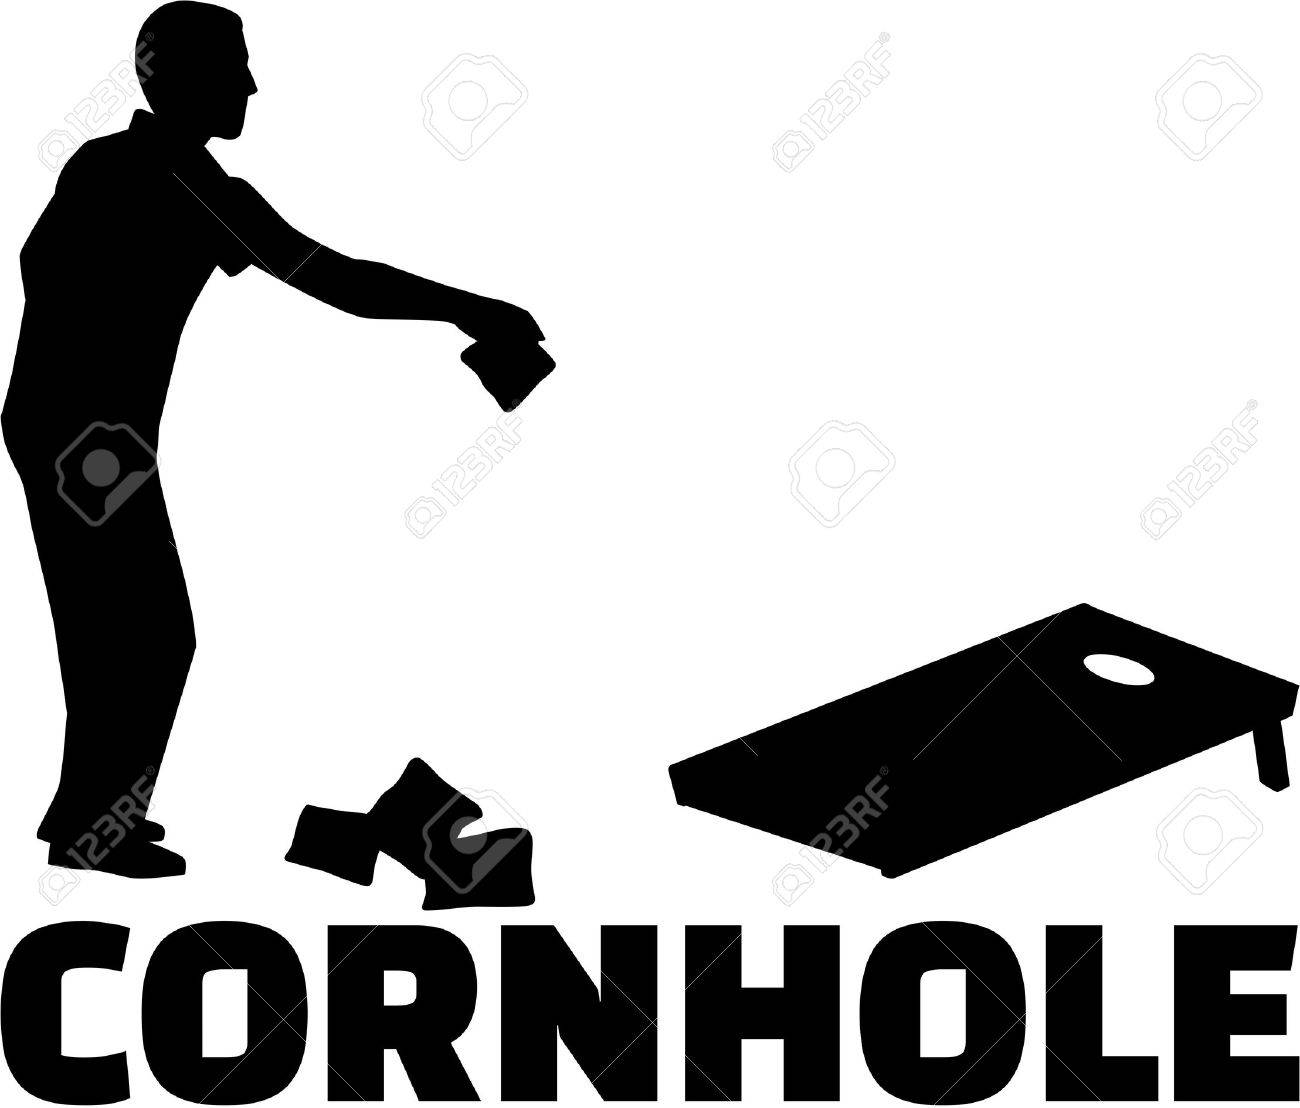 Cornhole game with silhouette and game name Stock Vector - 67921494